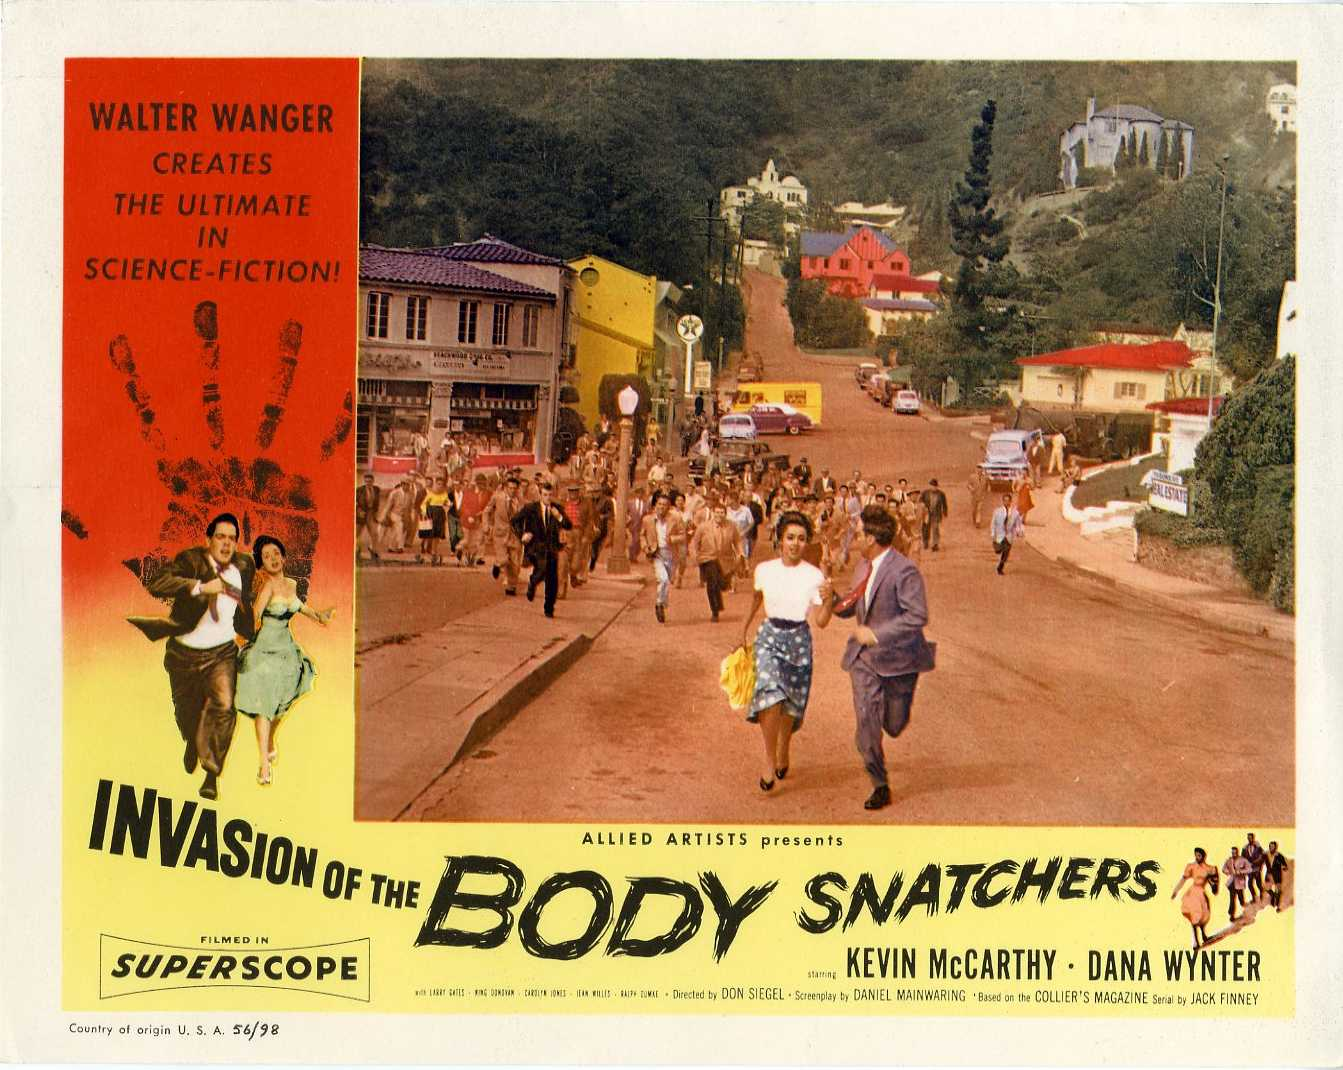 Leer Libros Online Gratis Sin Registrarse Invasion Of The Body Snatchers 1956 Movie